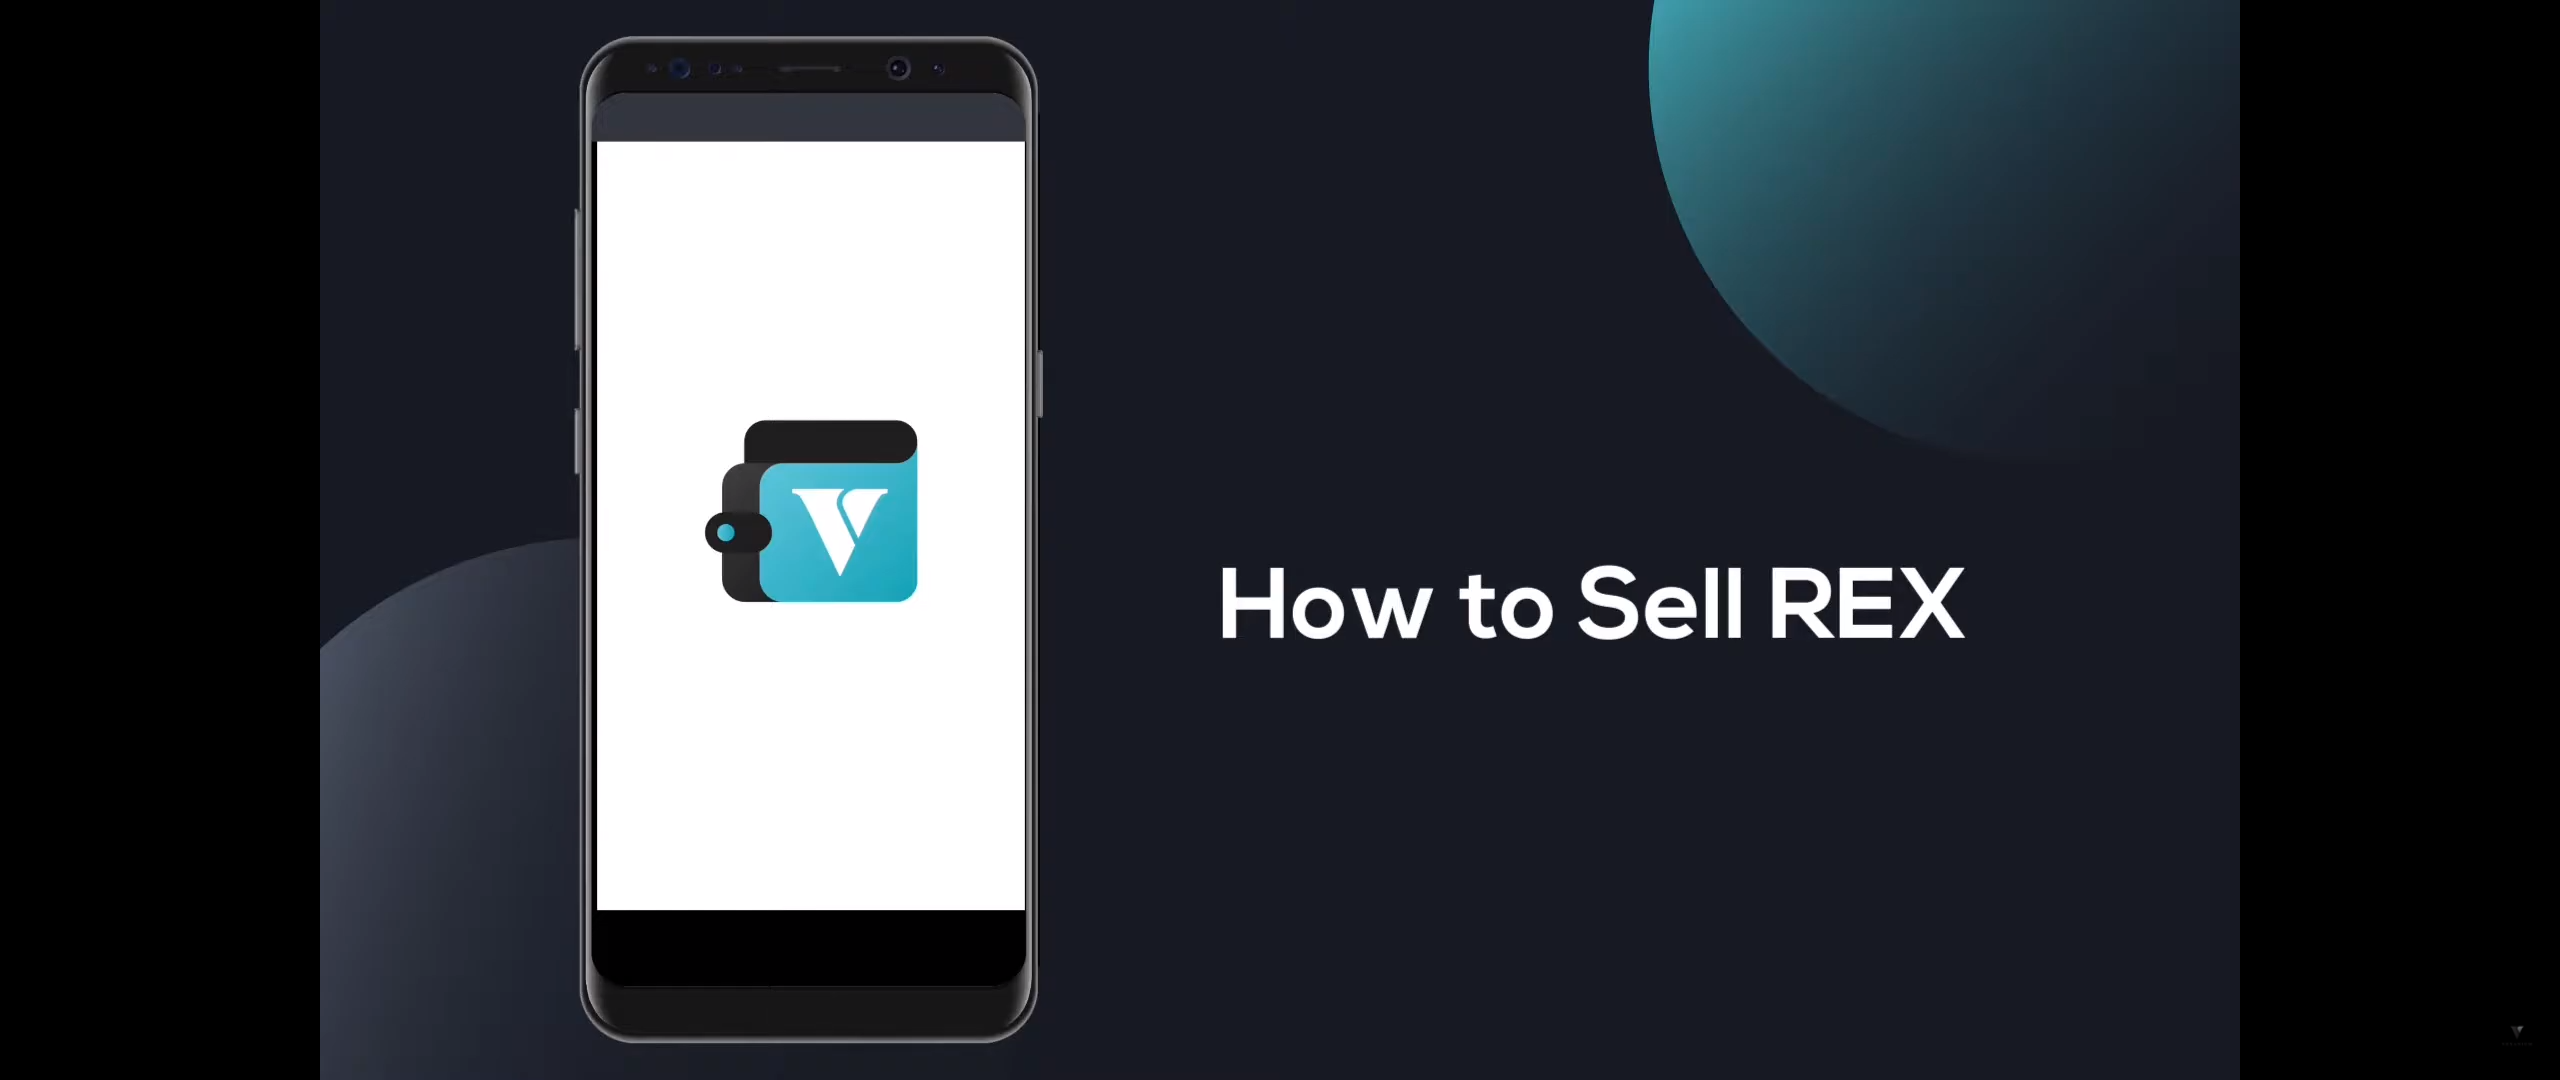 How to Sell REX